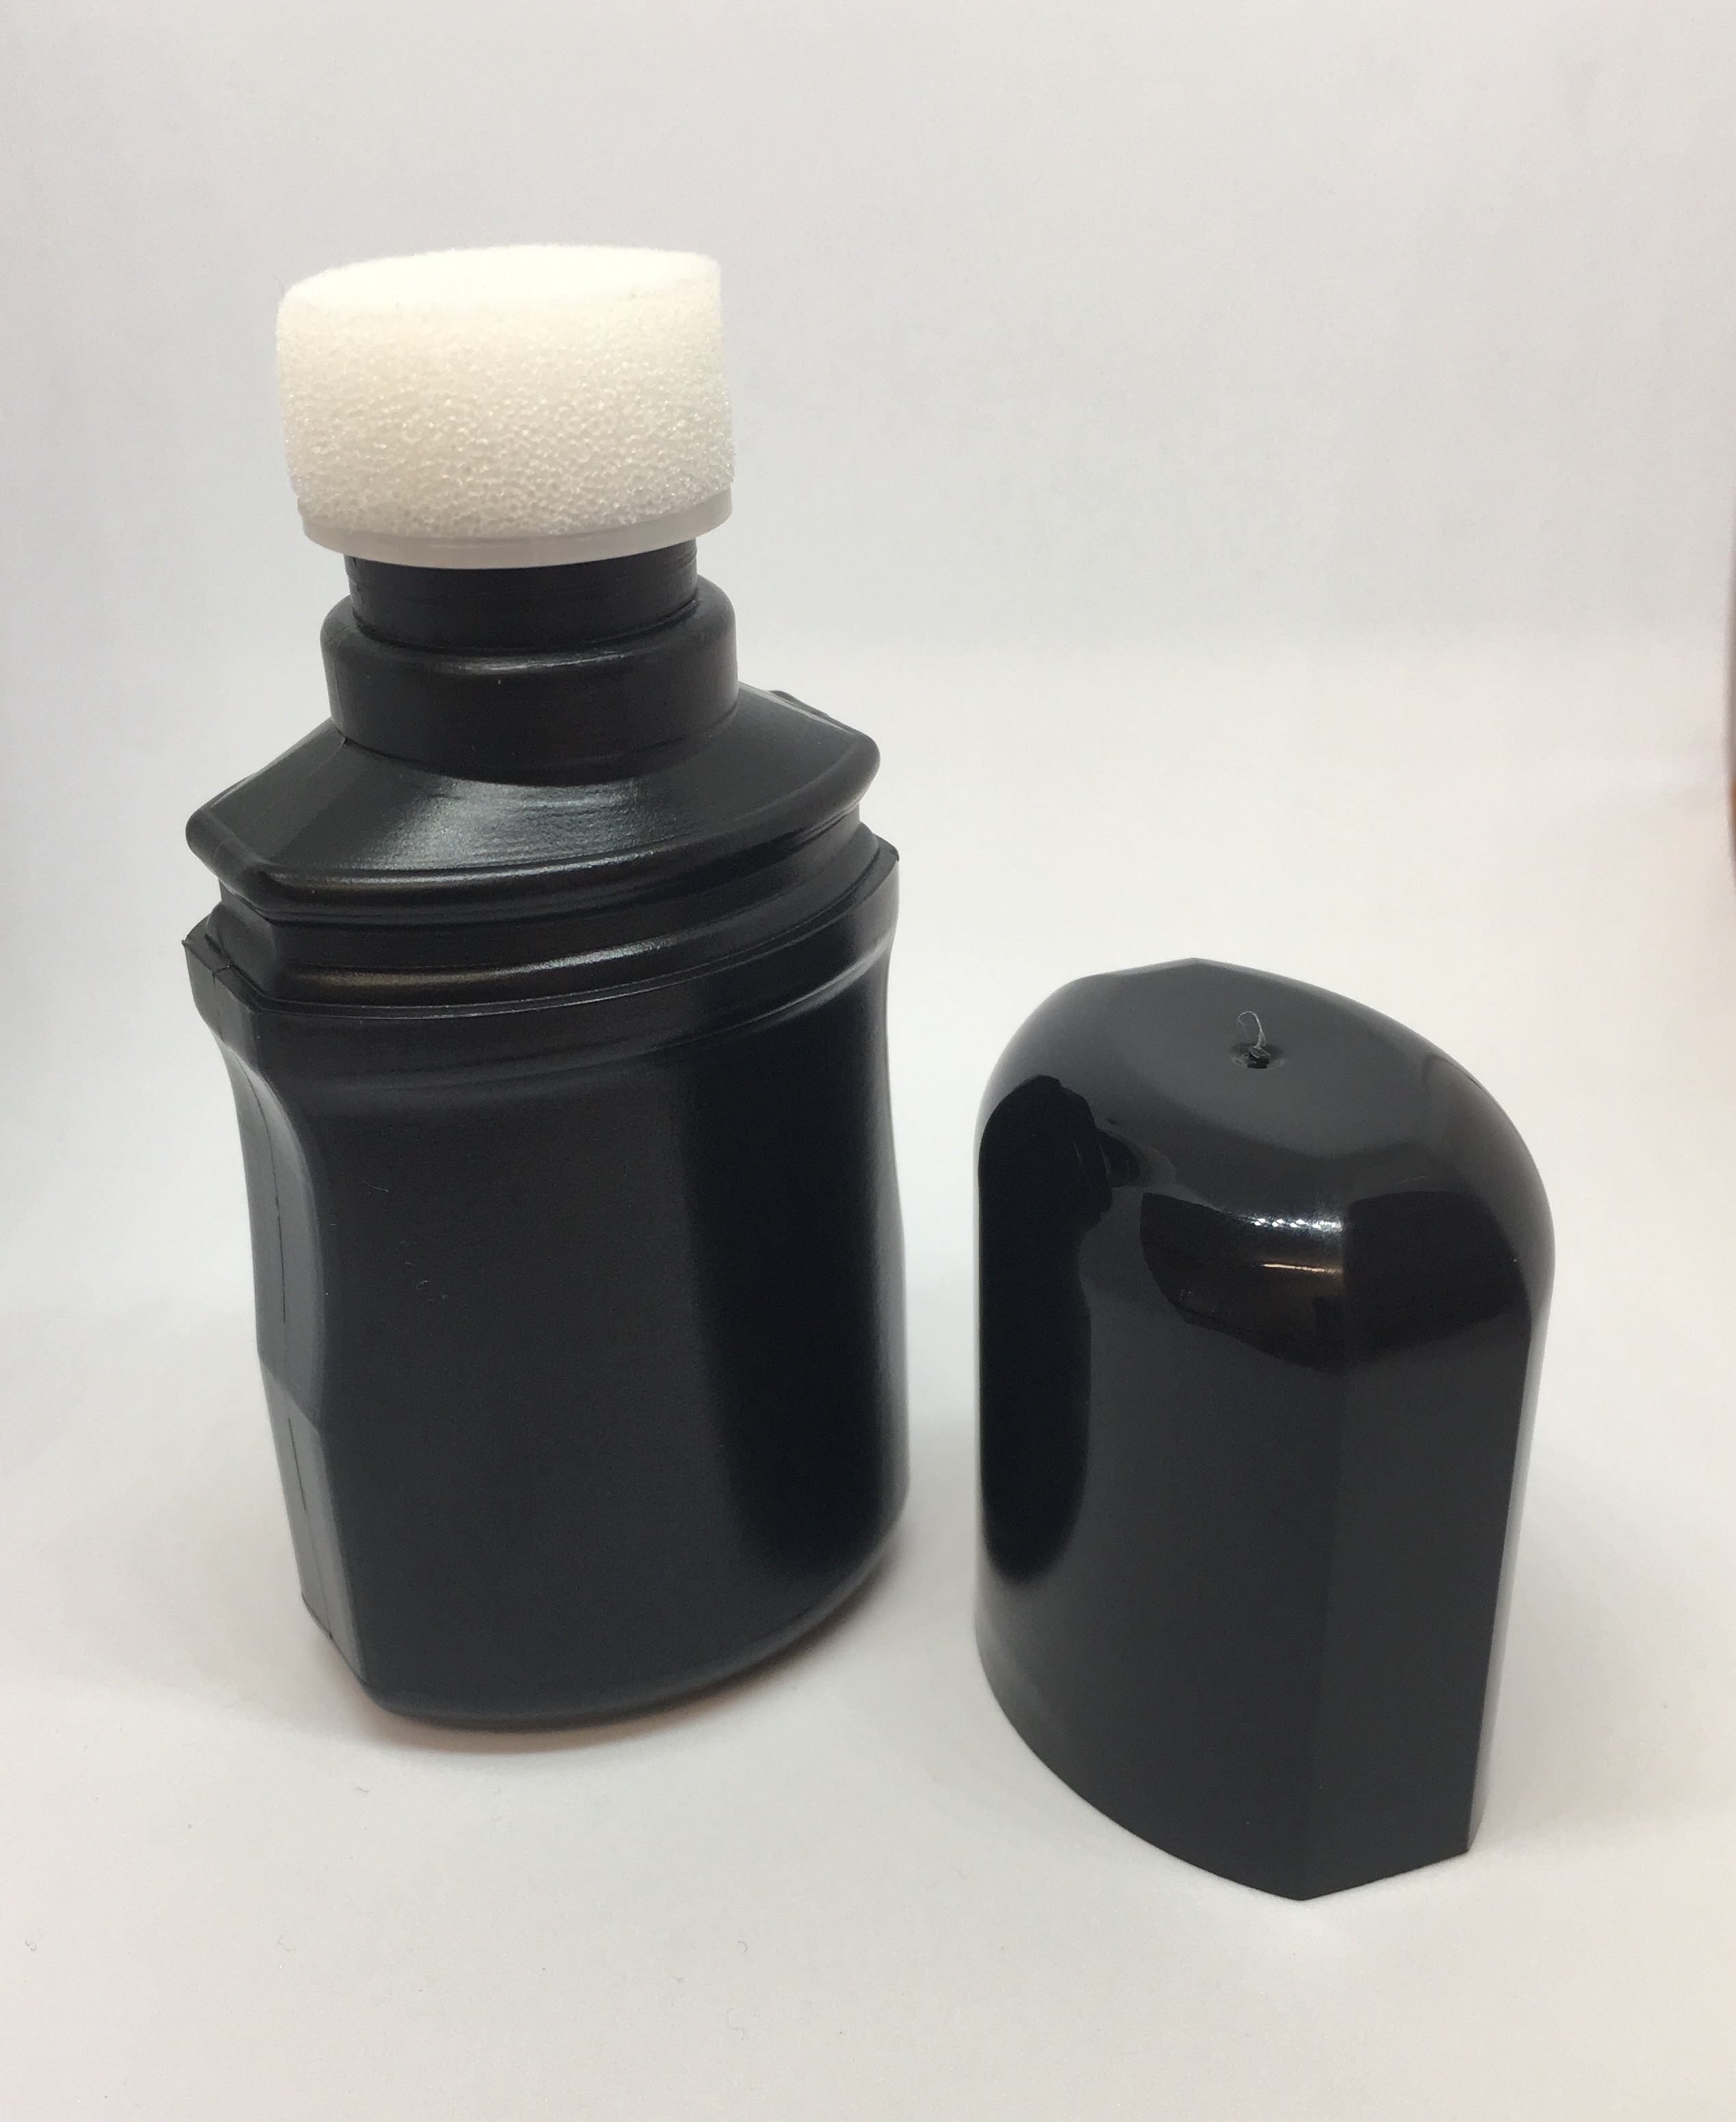 50ml Additive bottles with Foam Applicator 3pcs